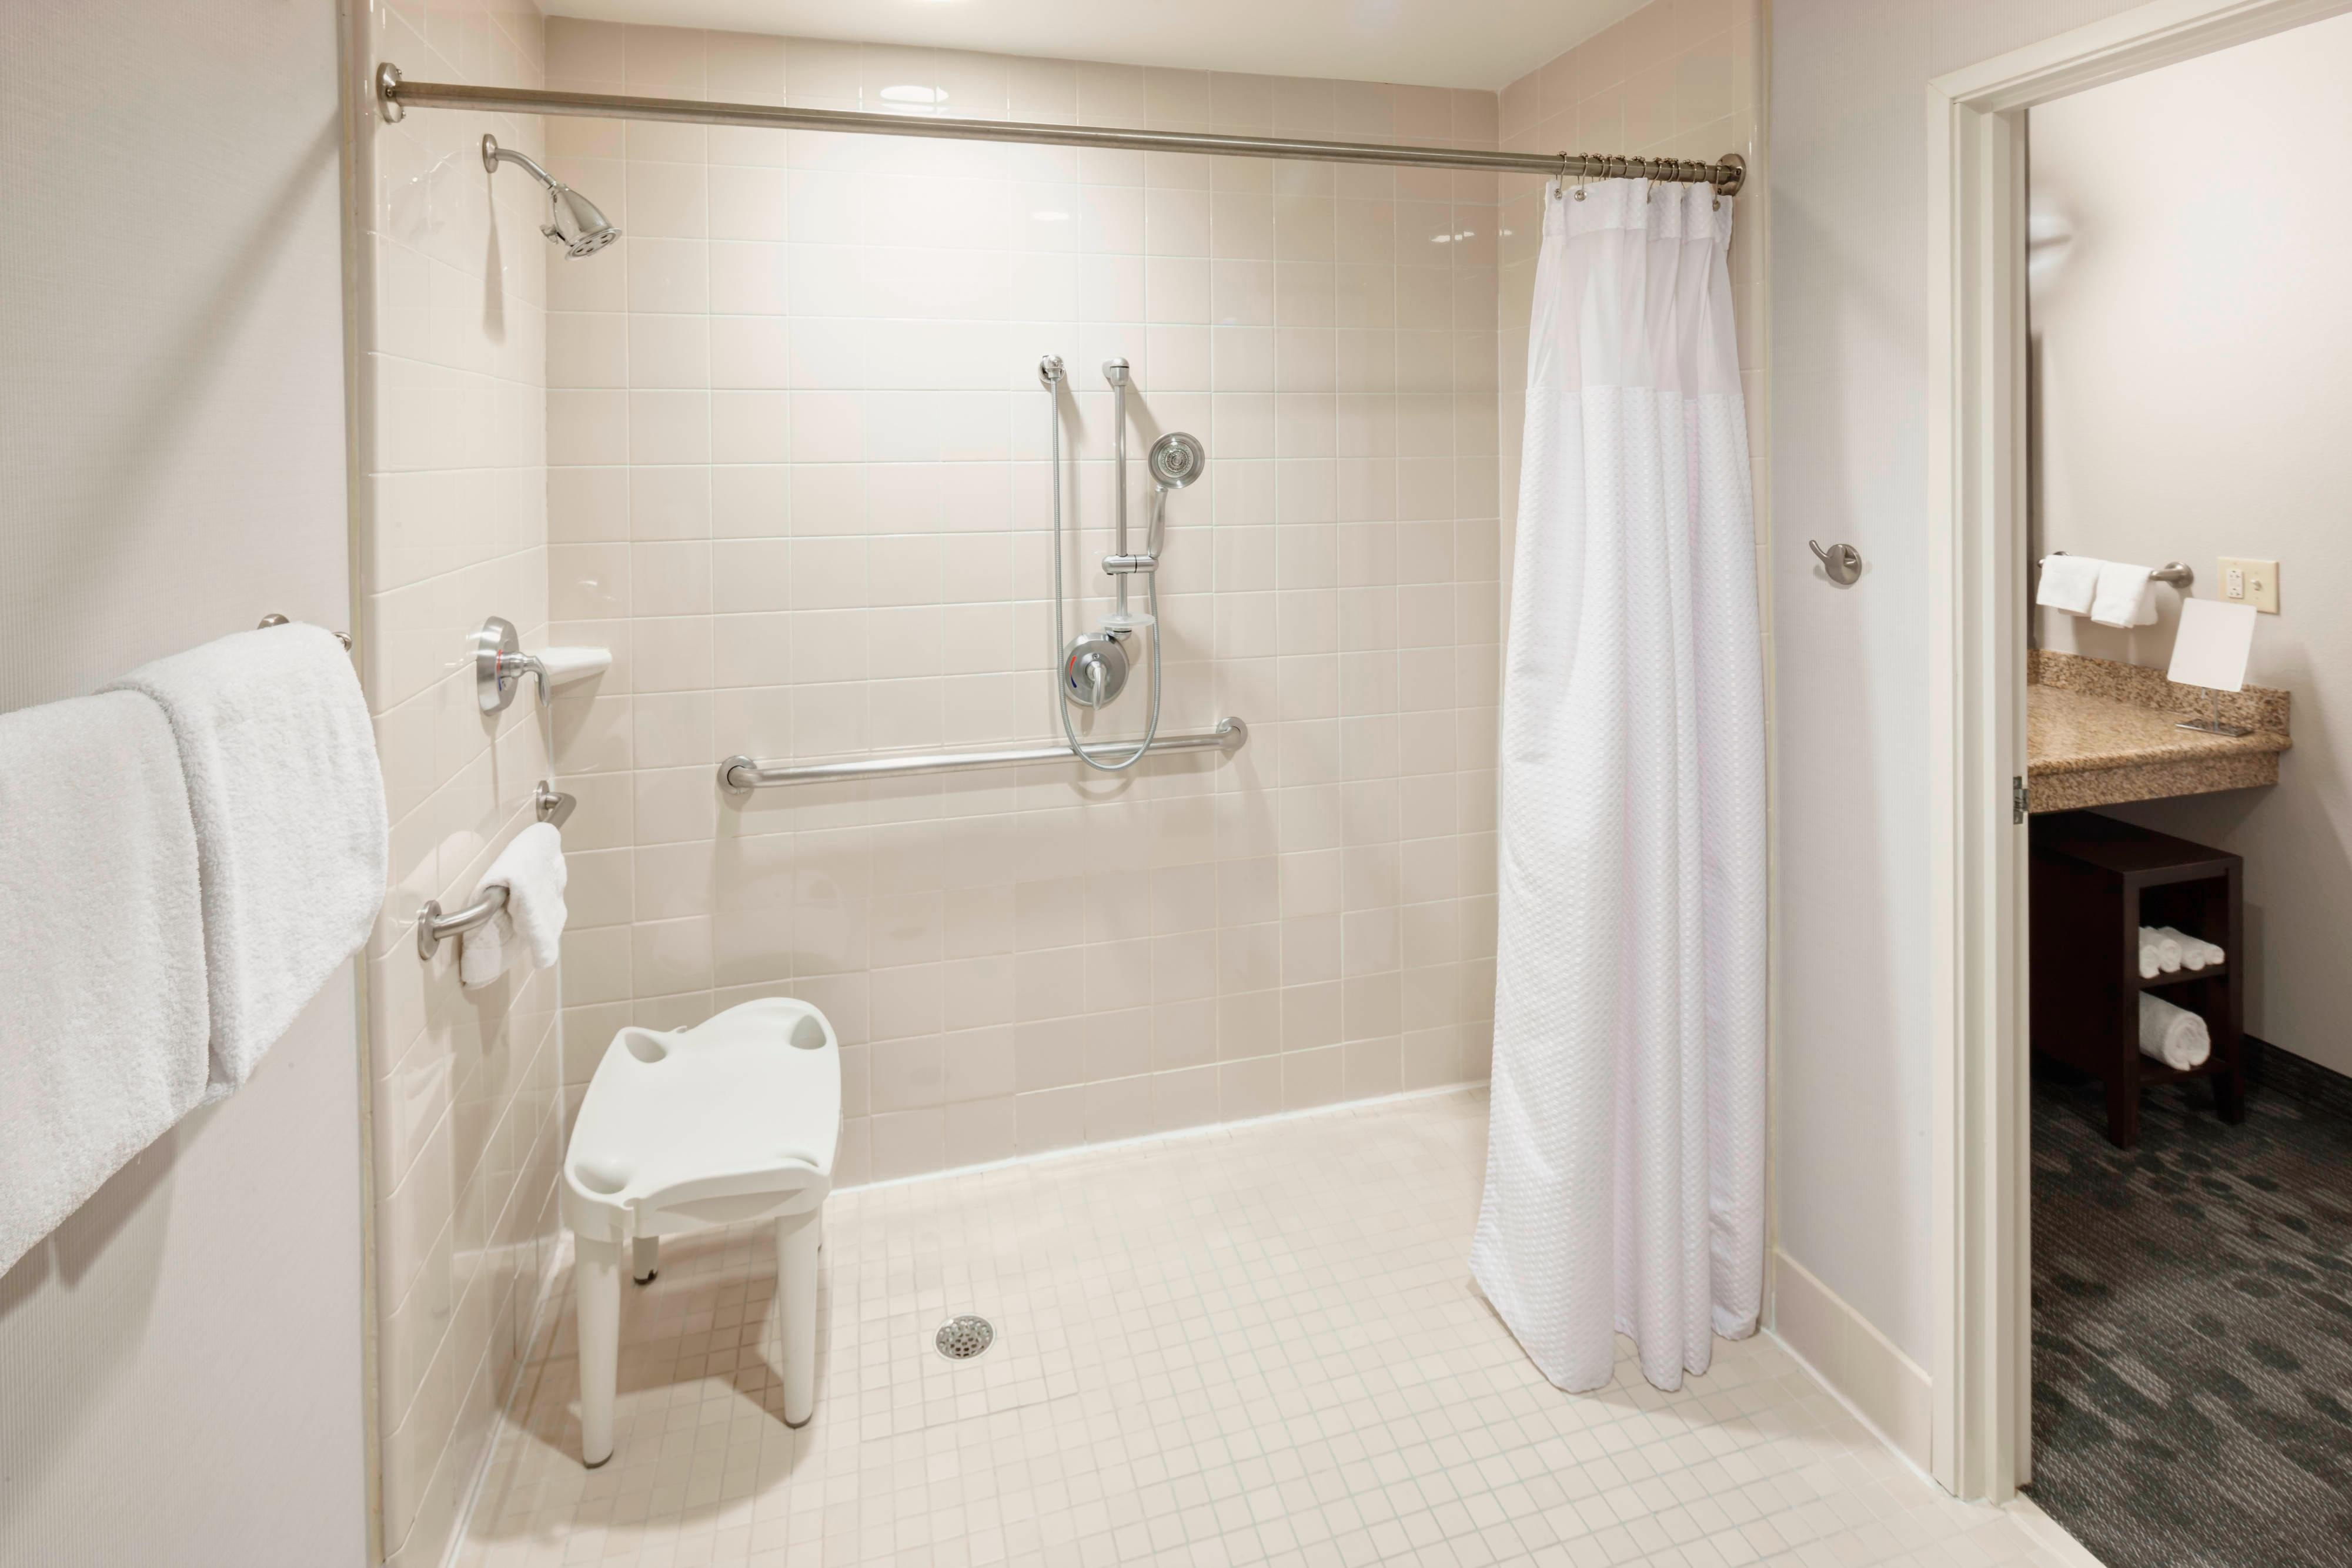 Accessible Guest Bathroom Roll-in Shower